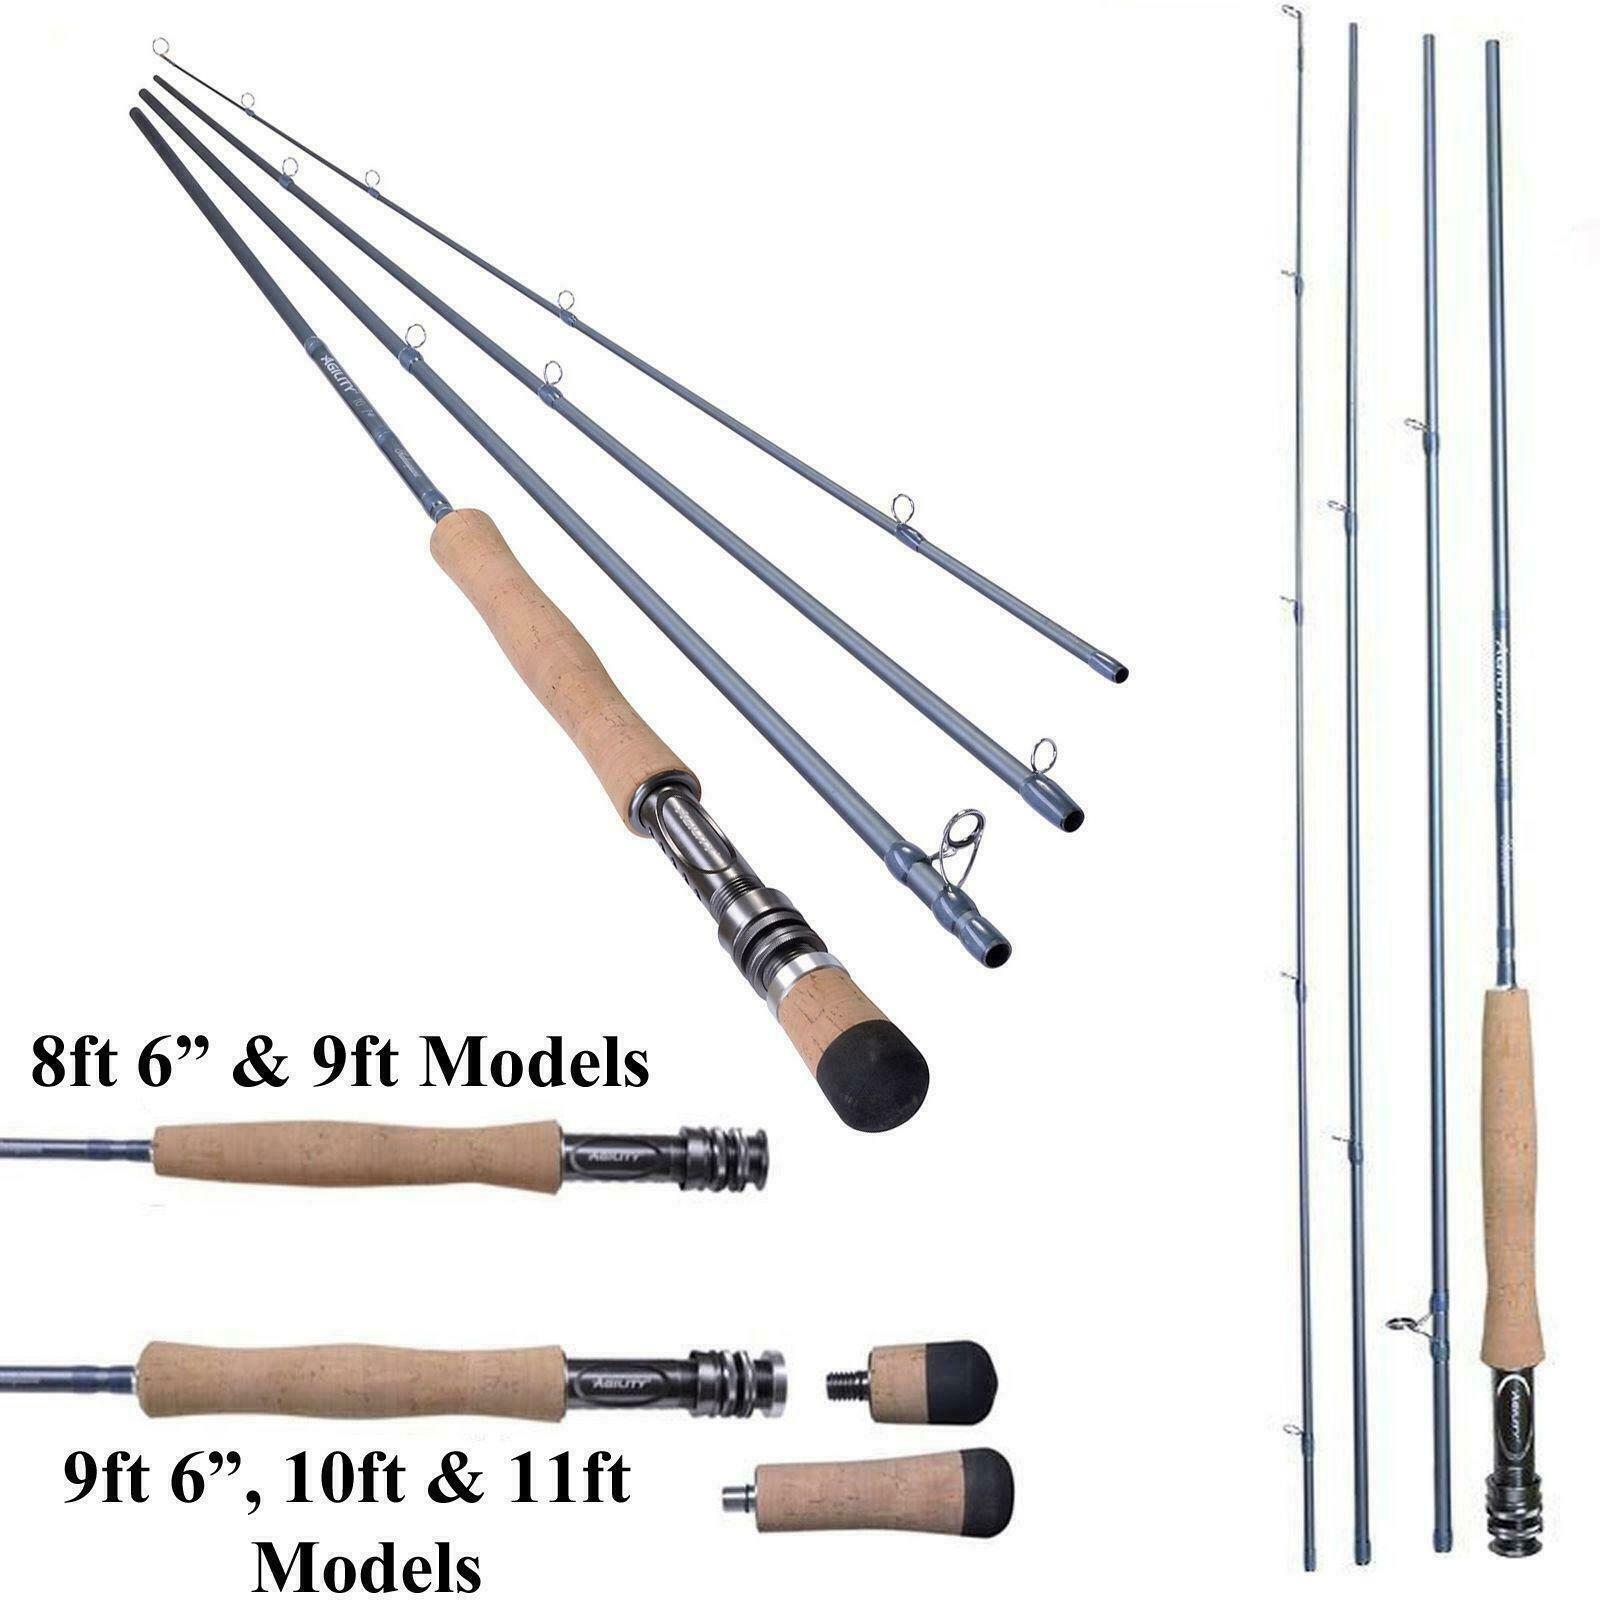 New shakespeare agility 2 4 pce travel fly rod with for Fishing rod travel tubes